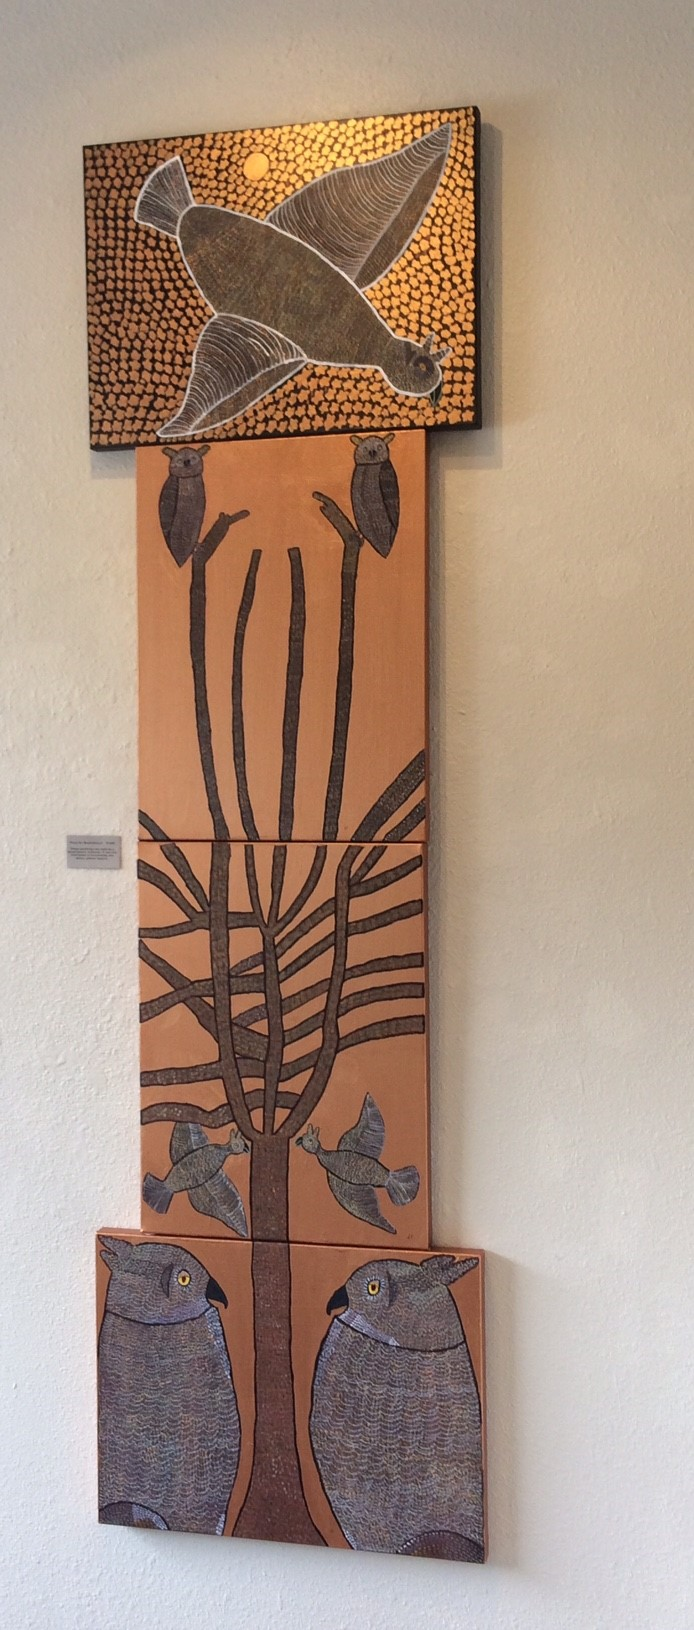 Copper tree series at arts guild Oct 2018.jpg